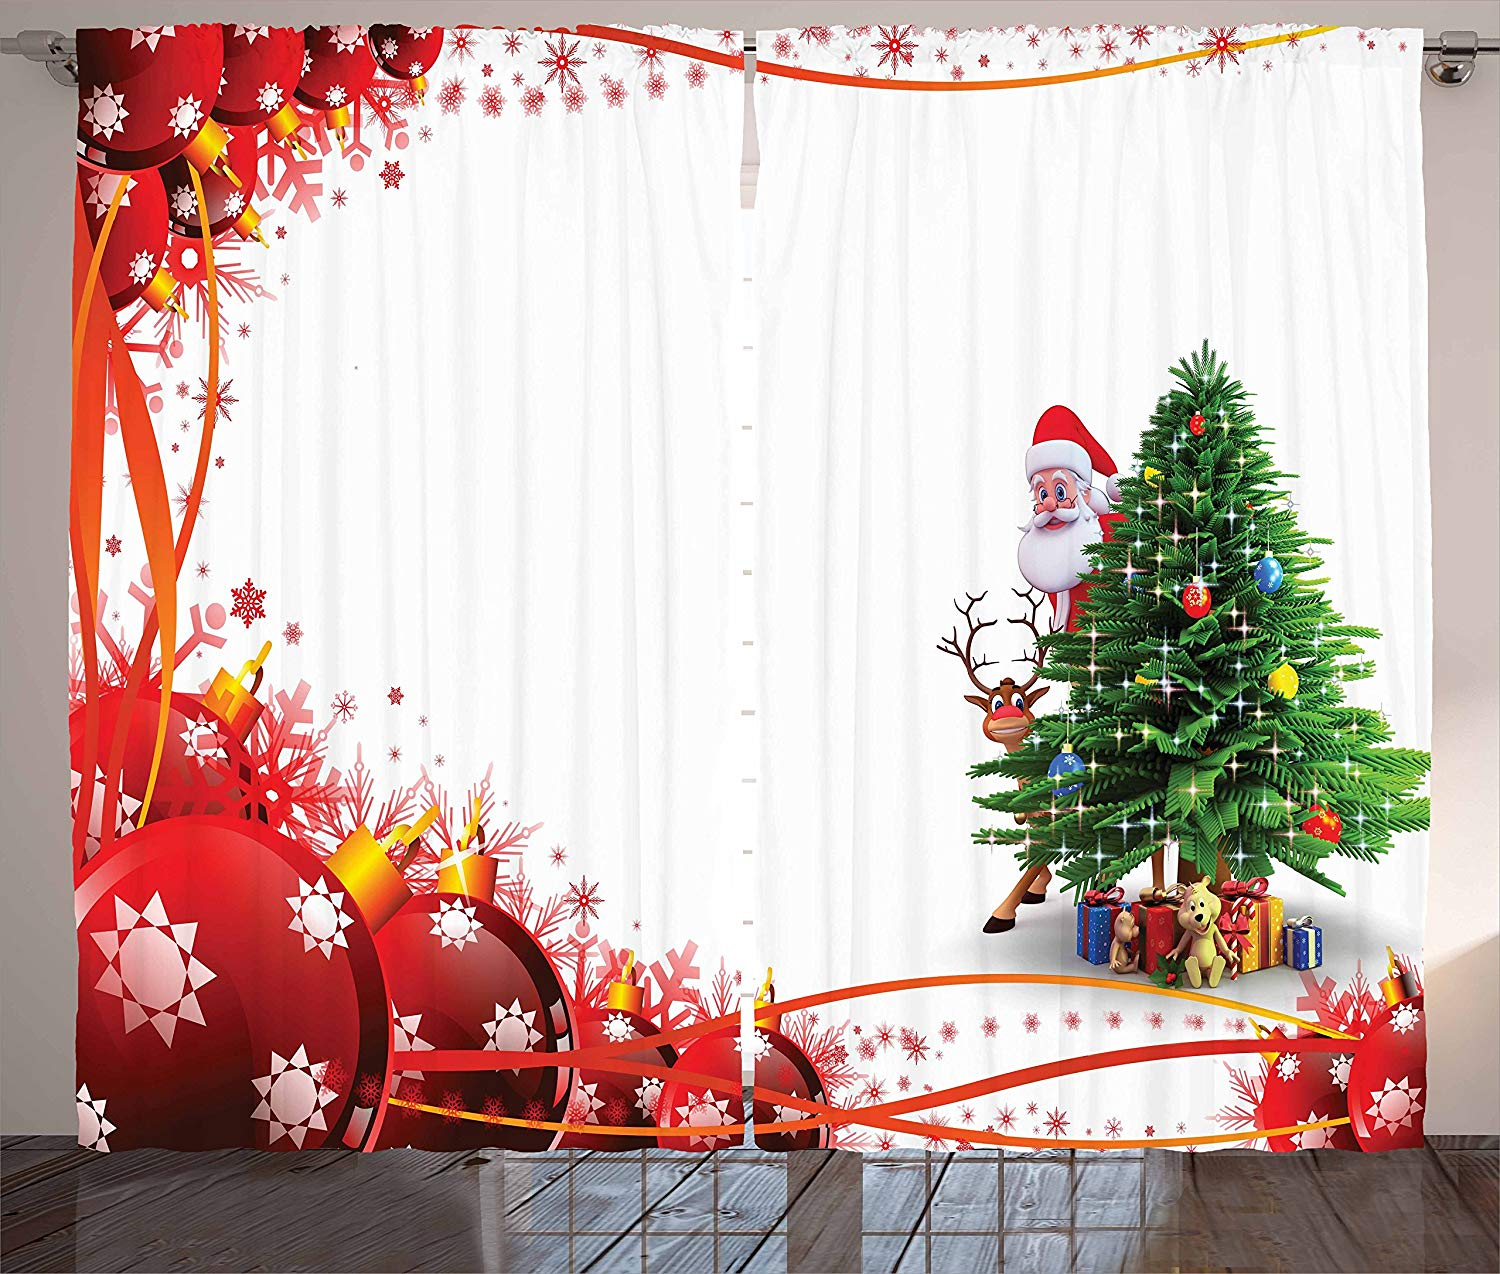 Santa Curtains Father Christmas And Reindeer Smiling Behind A Festive Pine Tree In Red Balls Frame Living Room Bedroom Window